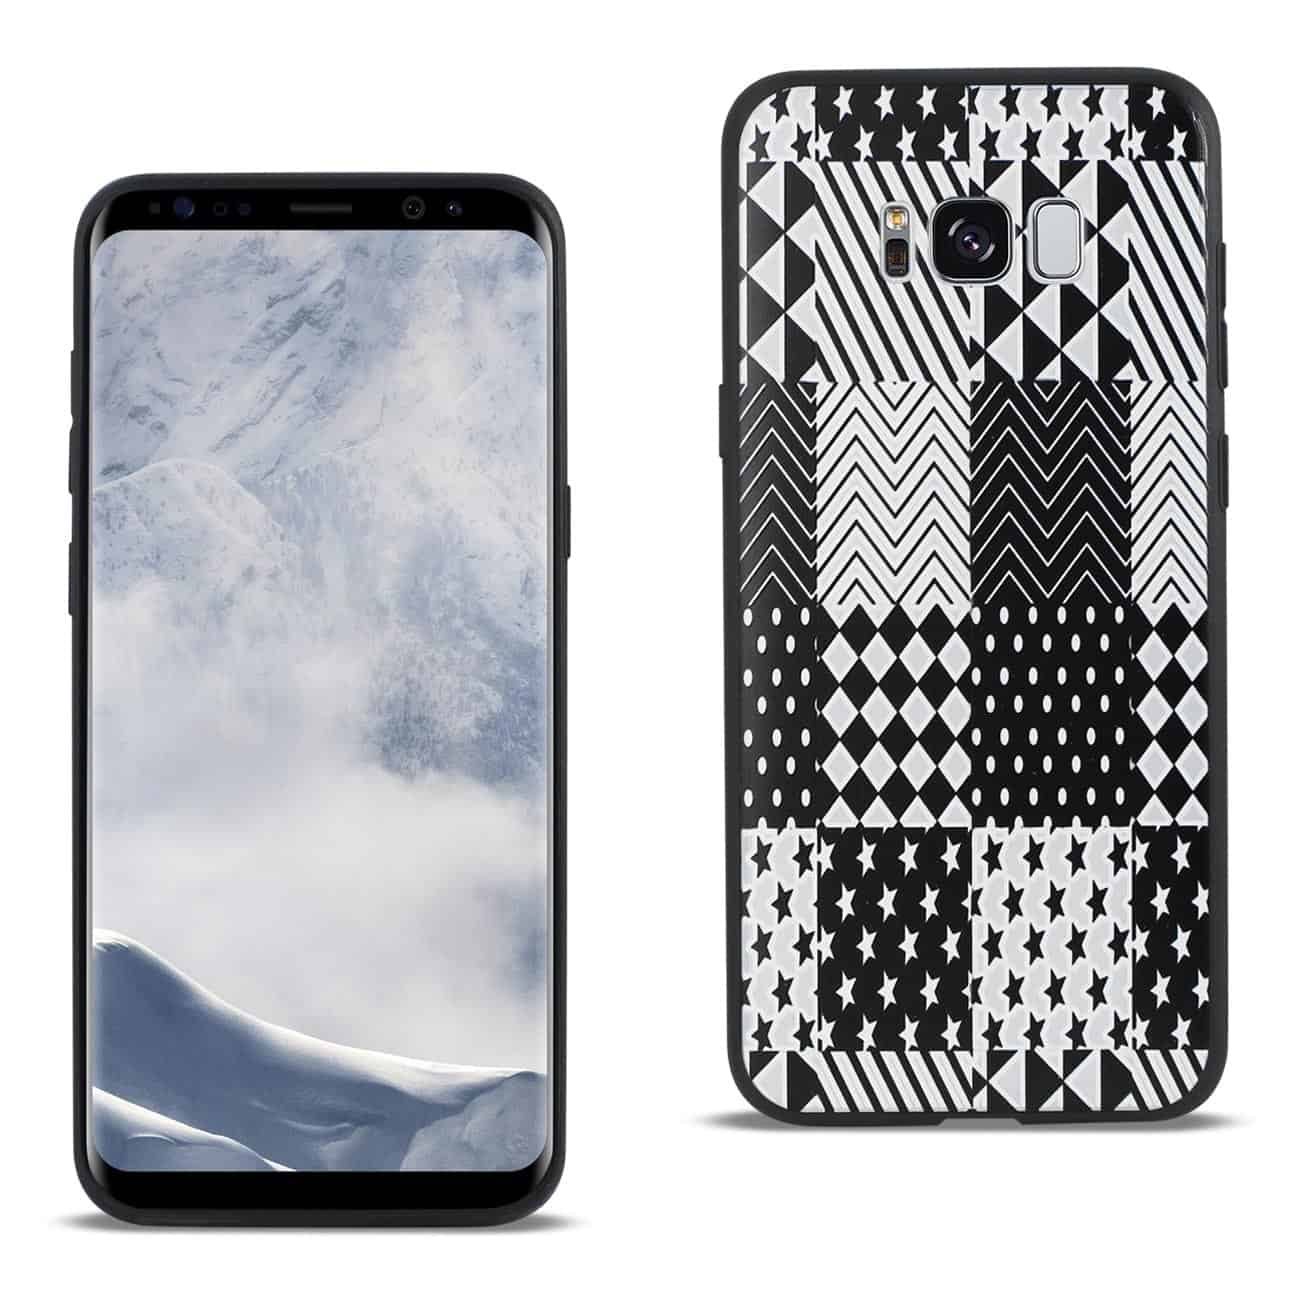 SAMSUNG GALAXY S8 EDGE DESIGN TPU CASE WITH VERSATILE SHAPE PATTERNS